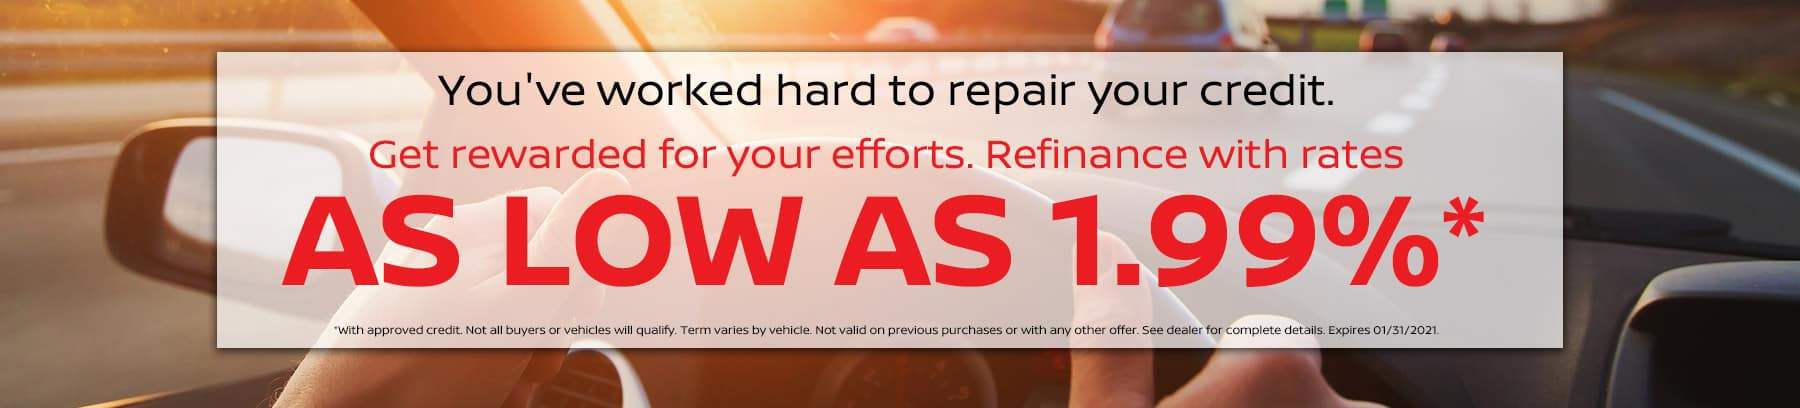 Refinance with rates as low as 1.99%